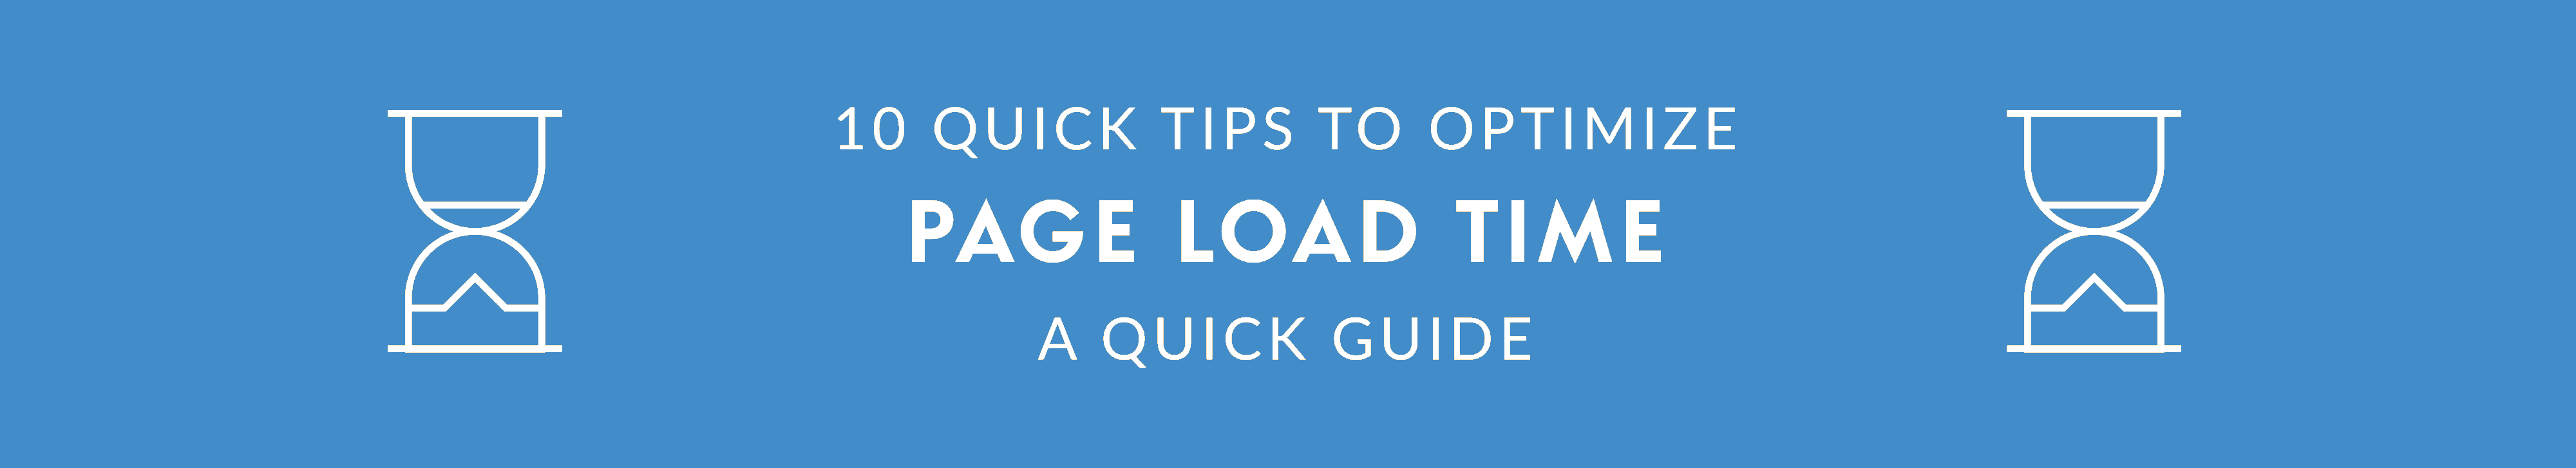 EN - SEO GUIDE - Page Load Time